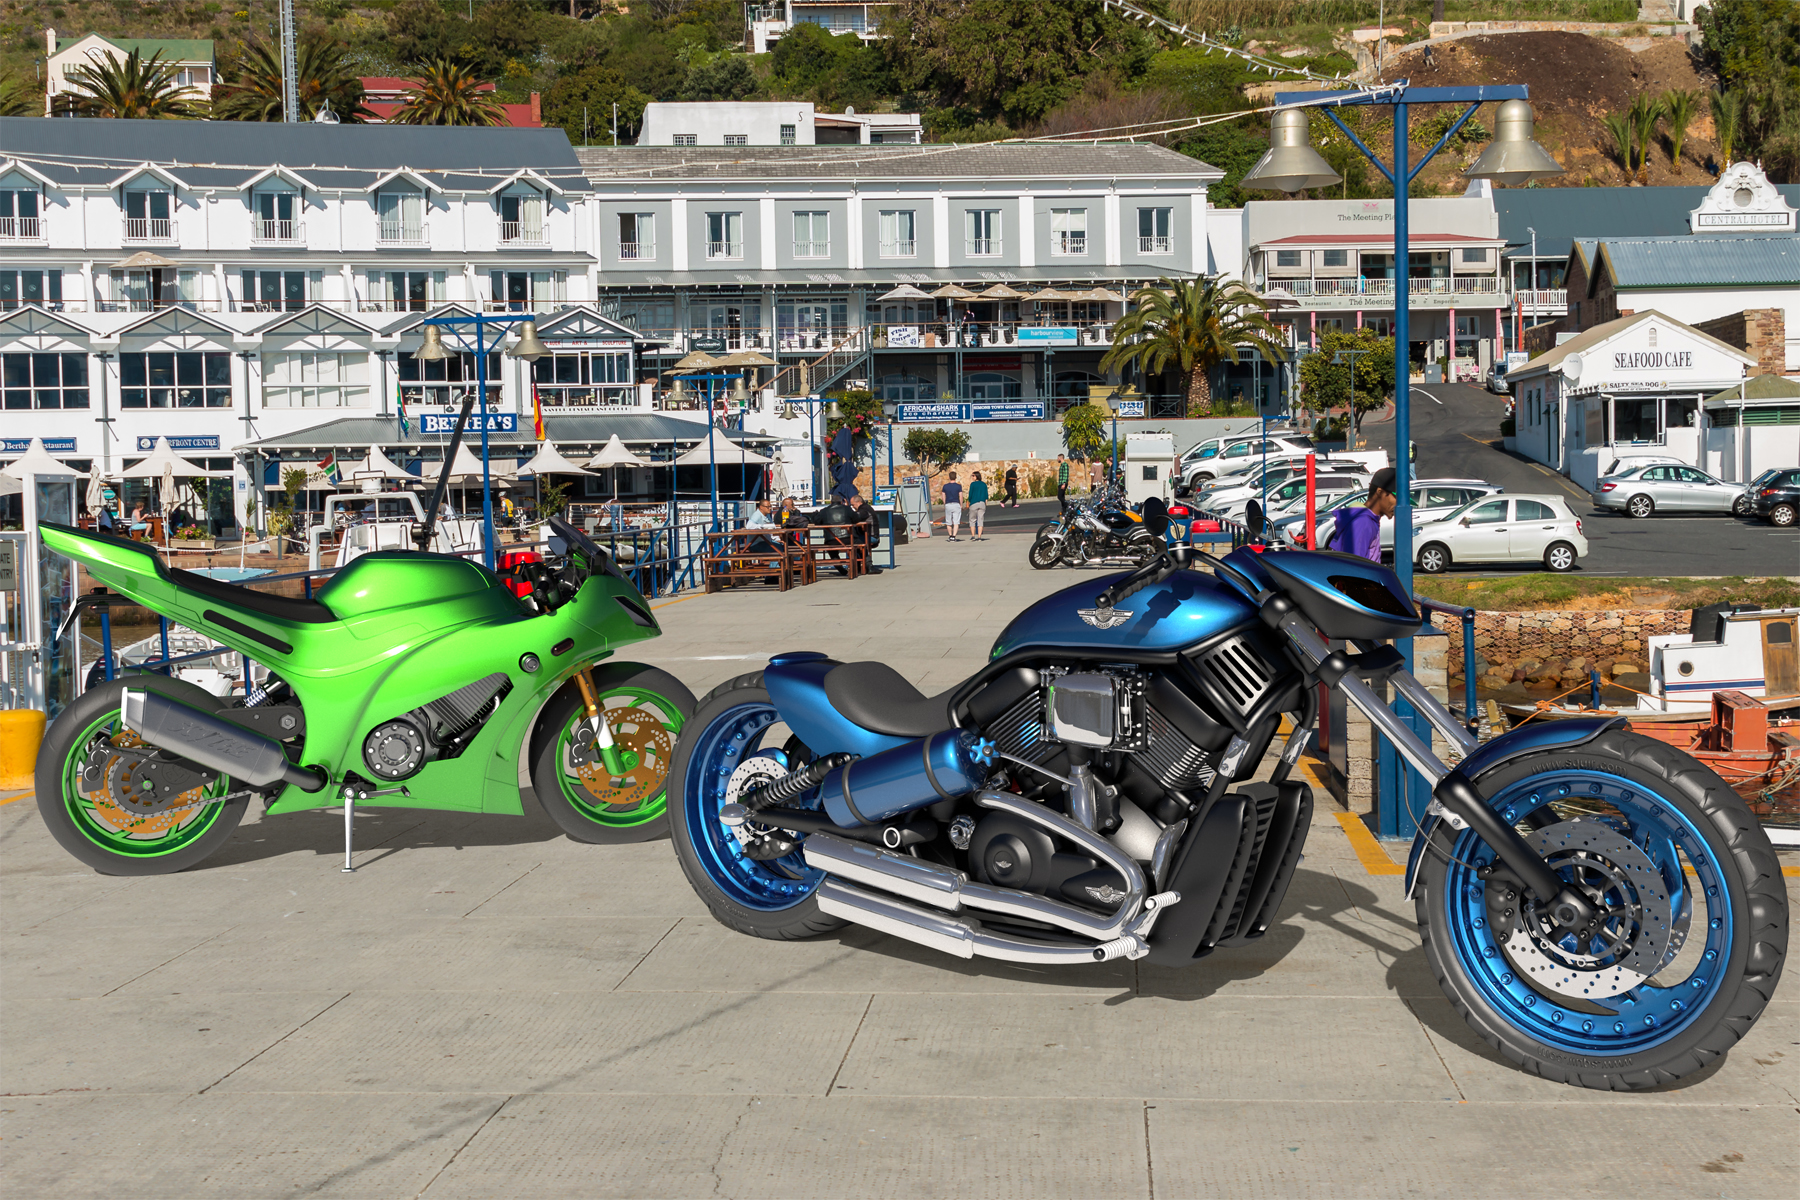 One of the bikes is my favourite Harley and it looks great in this blue paint job. The other is the result of a tutorial and it is in Kawasaki Green.